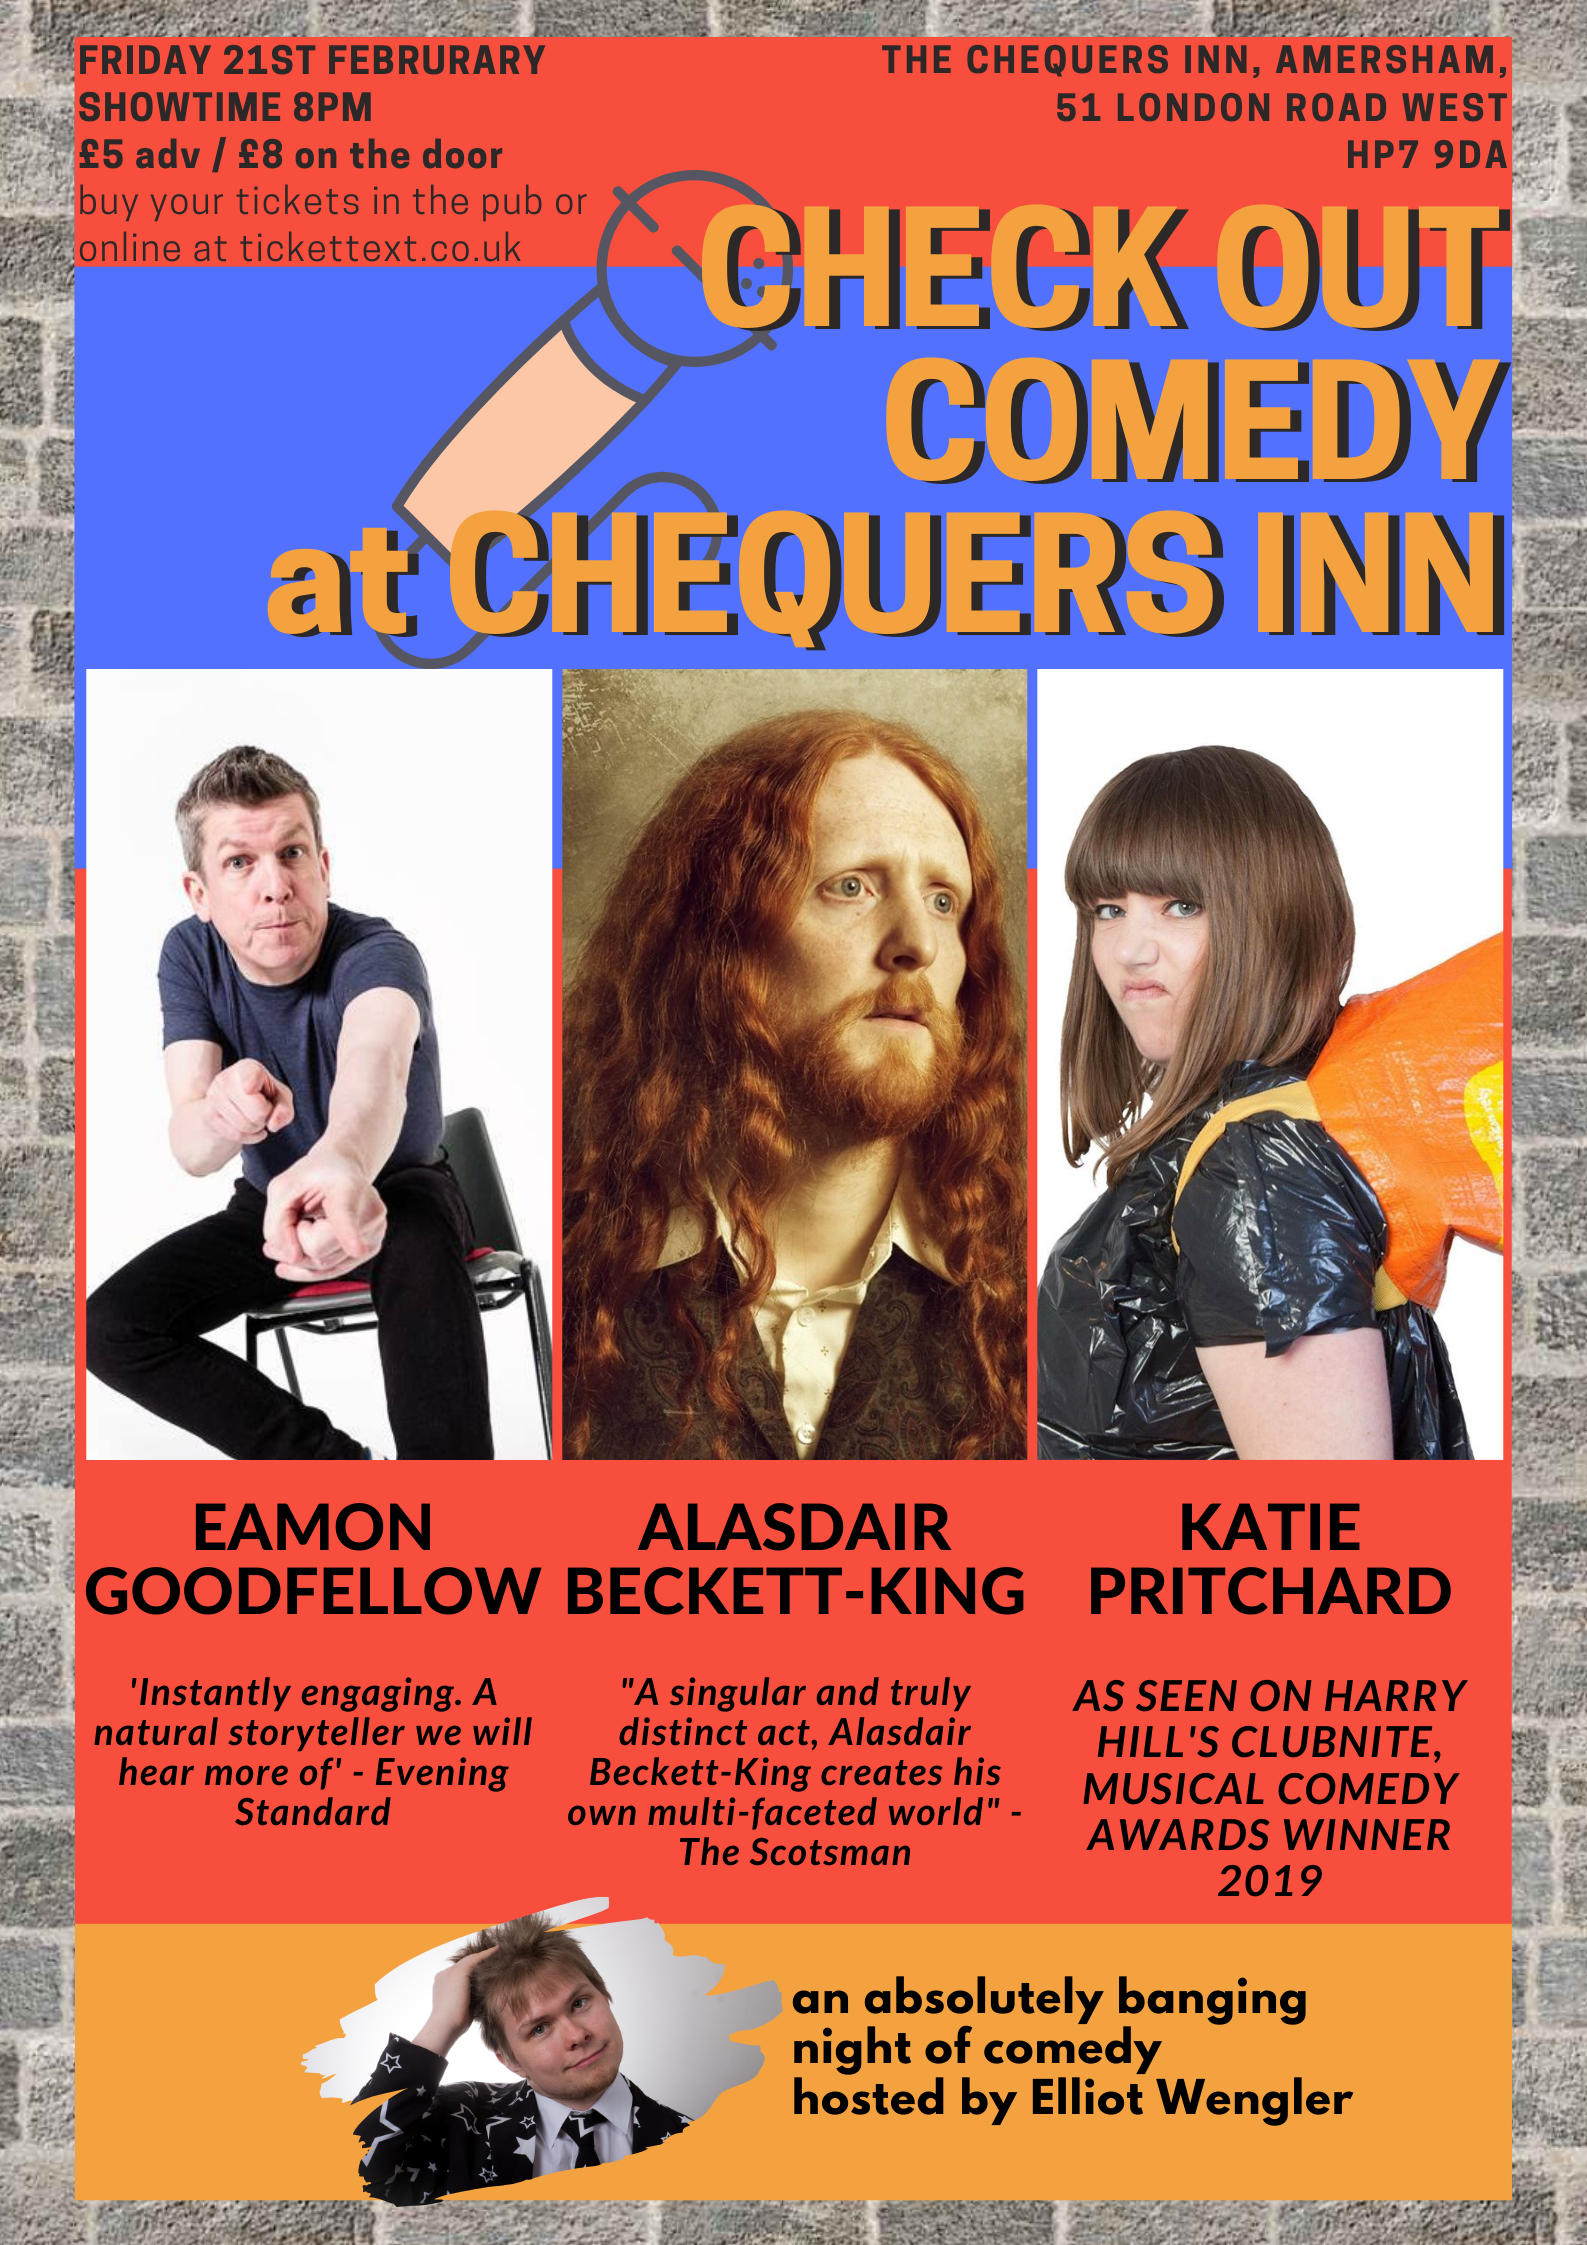 Chequers Inn Comedy Night - February